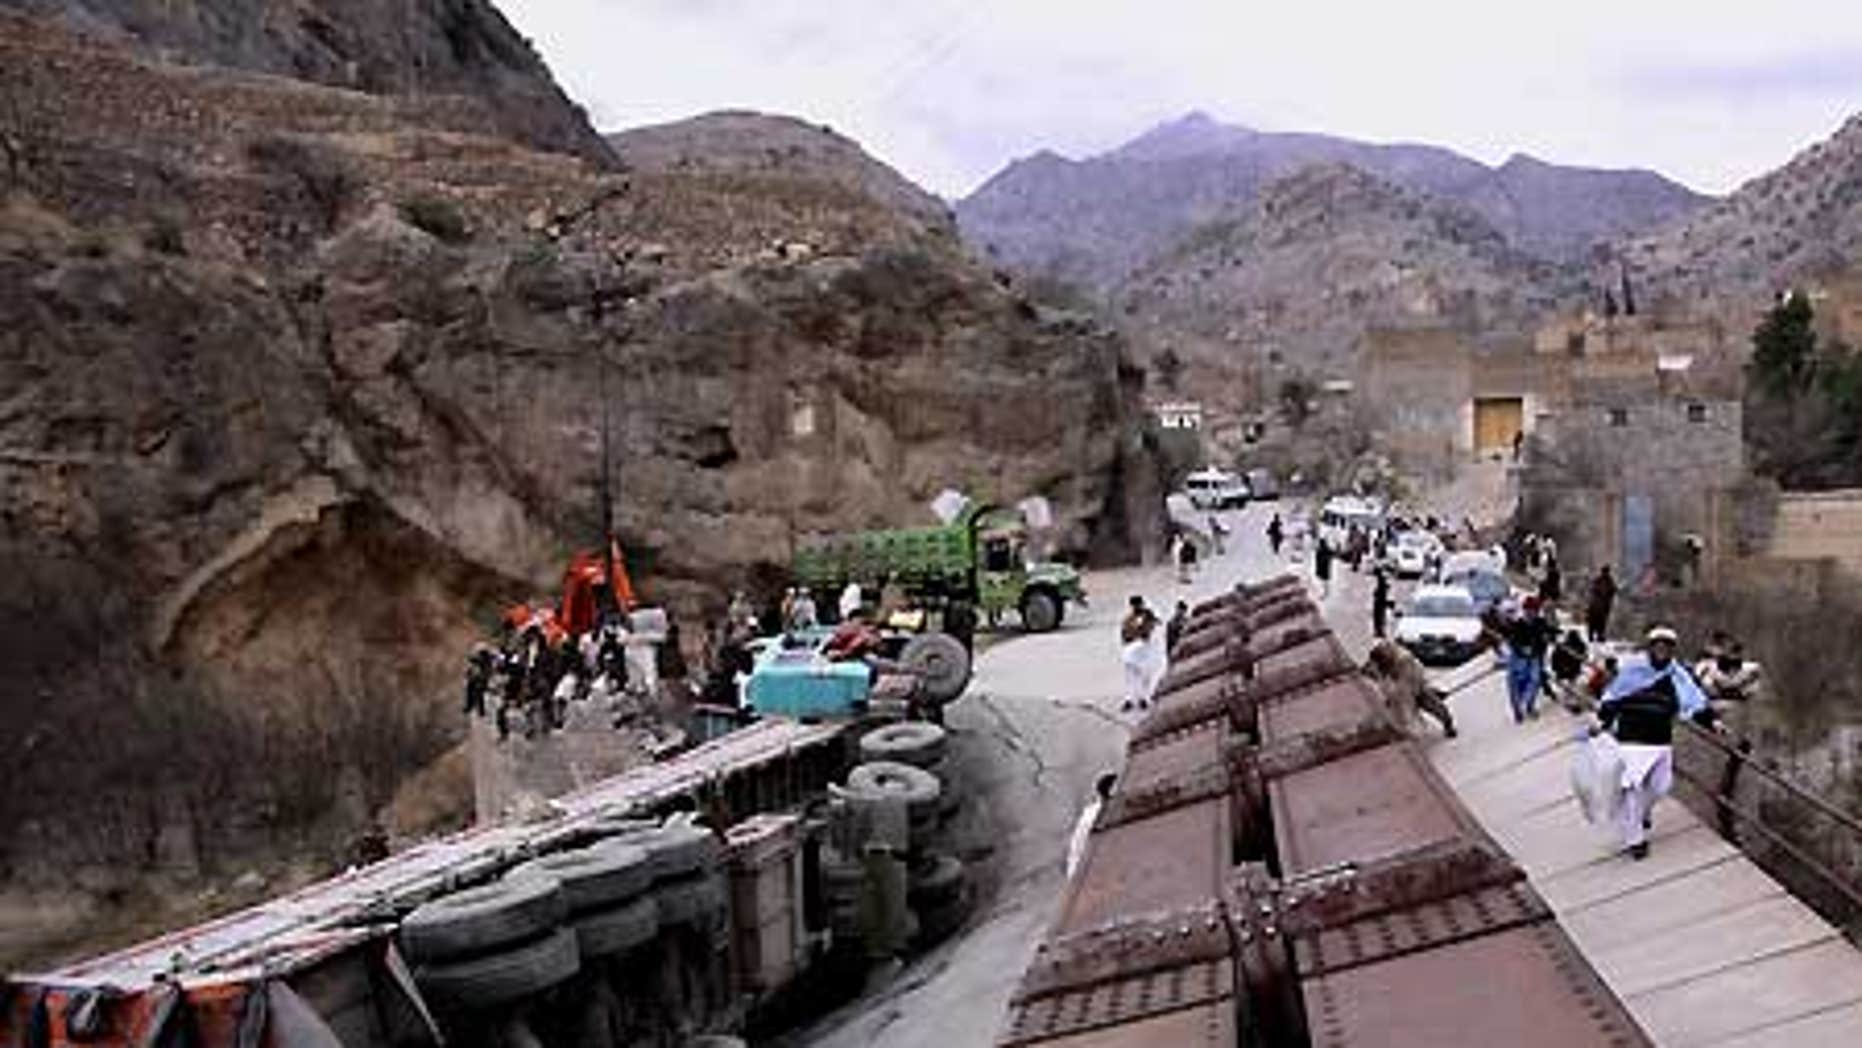 Feb. 3: A truck lies down on a bridge destroyed by alleged Islamic militants in the Pakistani tribal area of Khyber.